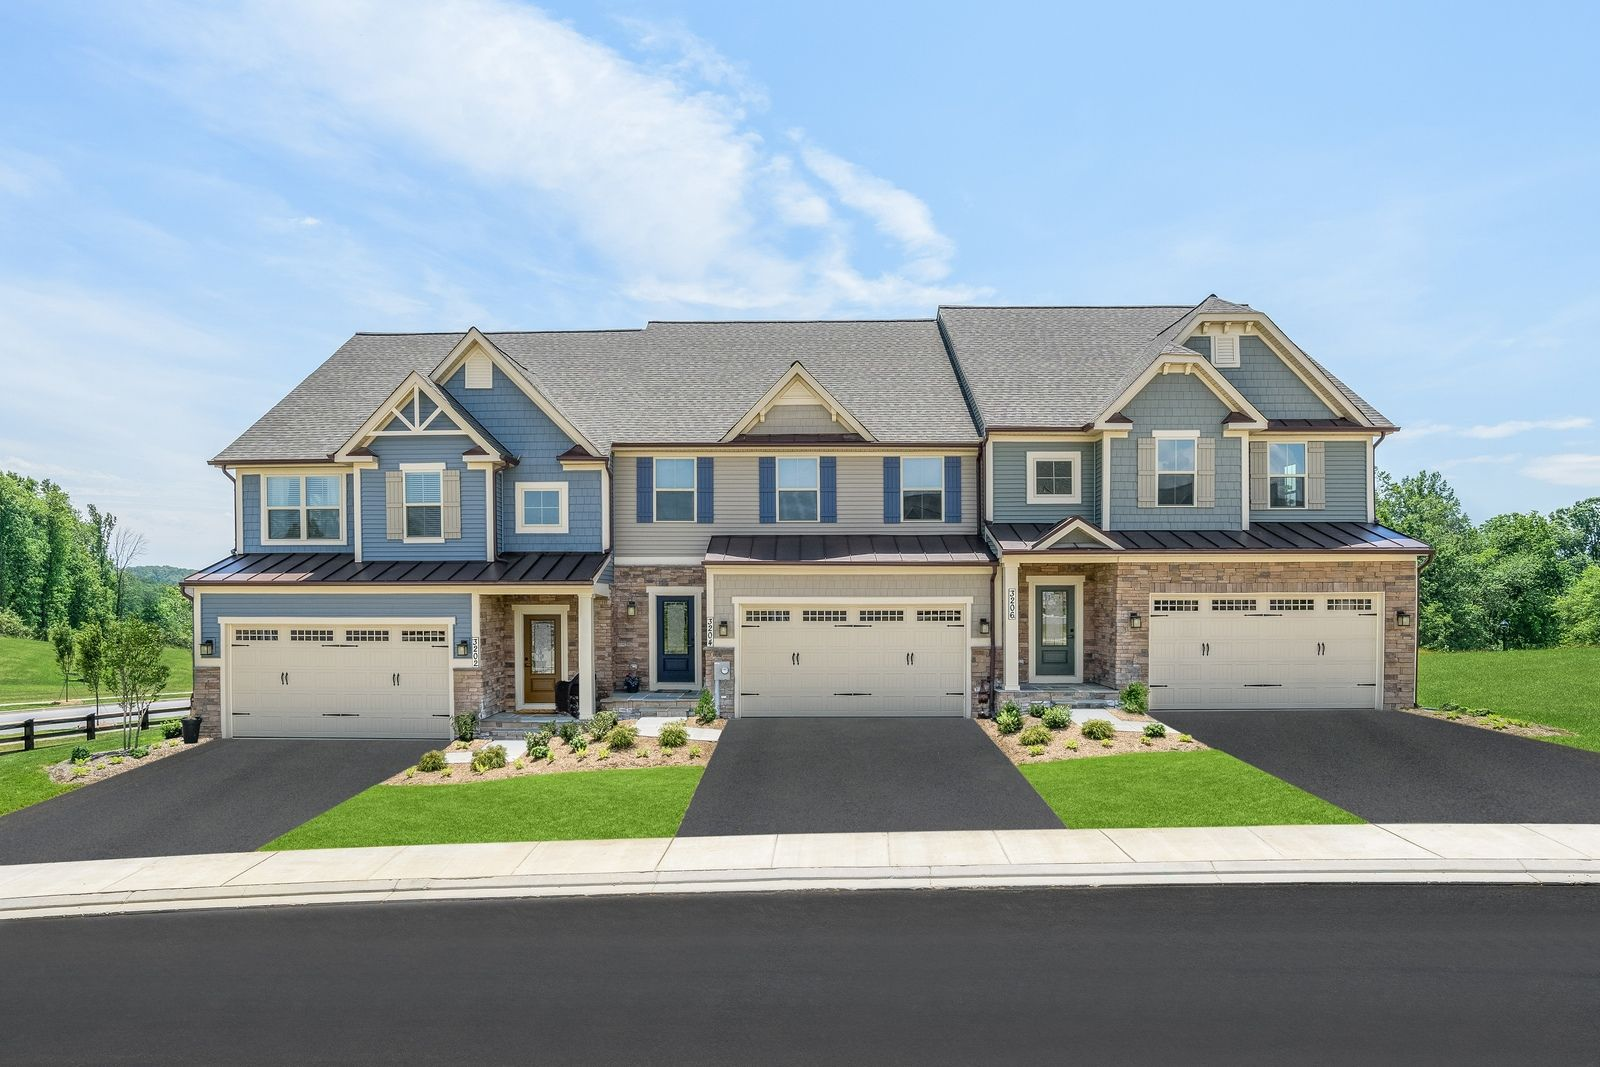 WELCOME TO LONGWOOD PRESERVE:Luxury townhomes with first-floor owner's suites available, up to a 2-car garage in Kennett Square, in a wooded Chester County setting, minutes from Longwood Gardens.Click here to learn more!